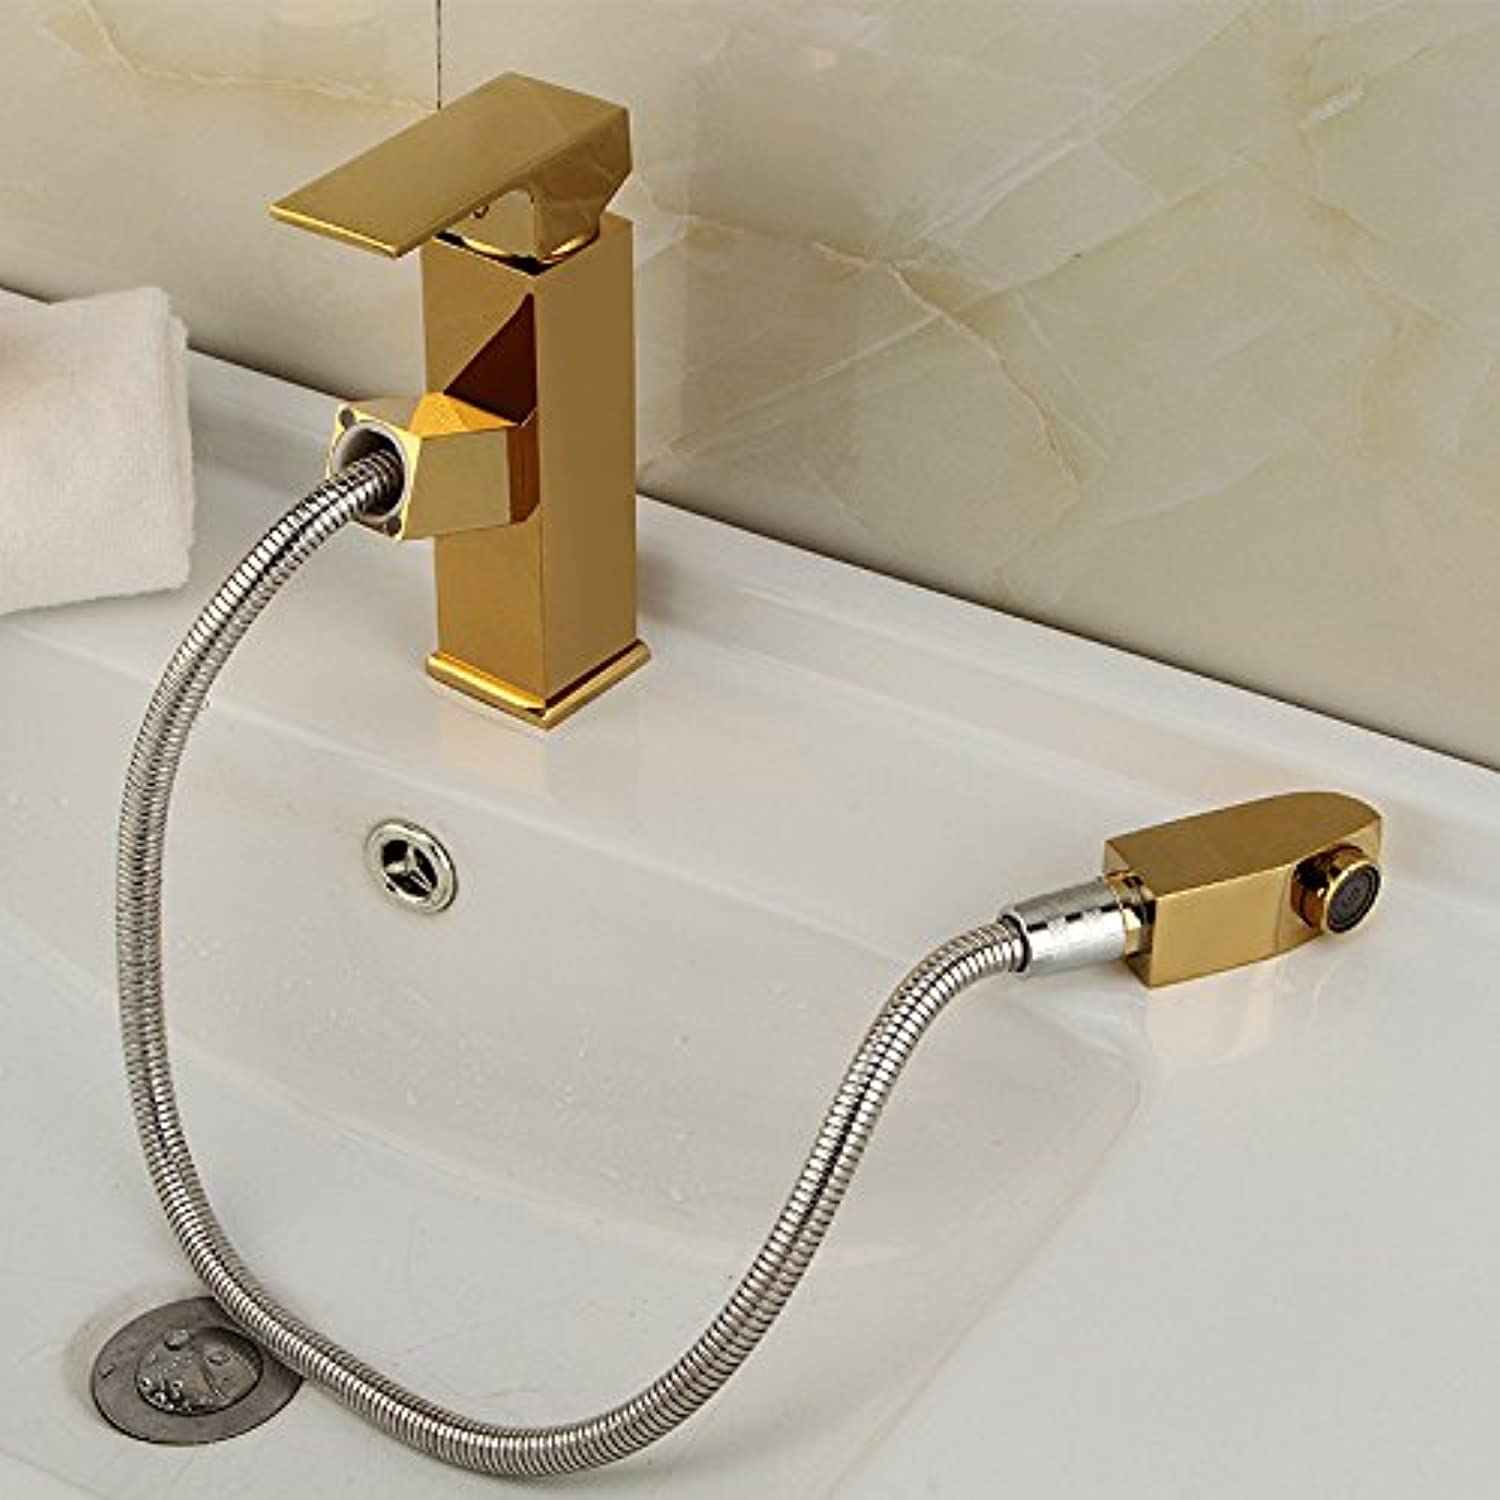 redOOY Faucet Taps Full Copper Belt Nozzle Telescopic Pull-Type Faucet Hot And Cold Basin Wash Head Special Faucet, gold